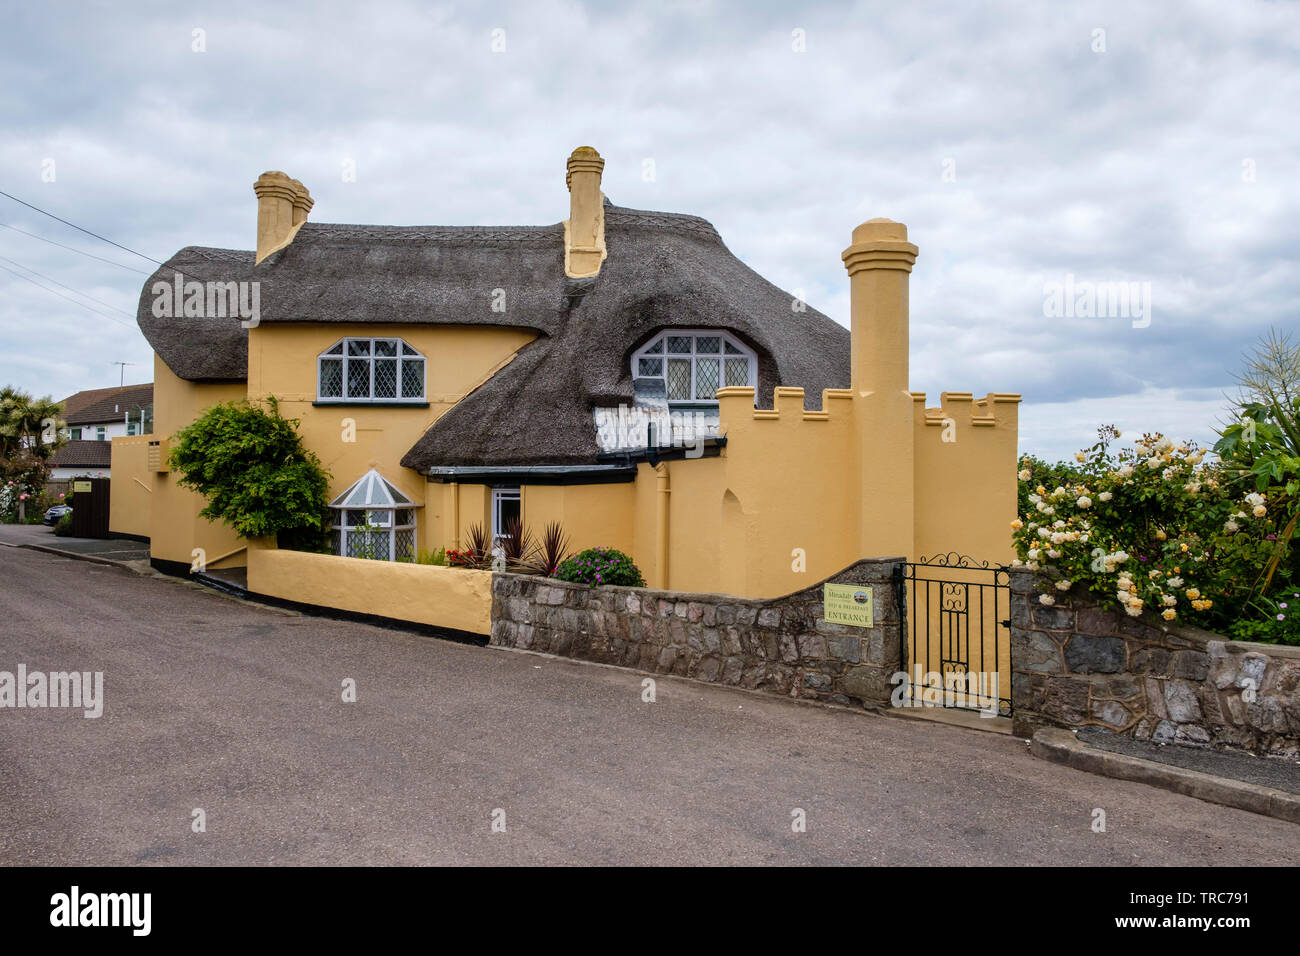 Thatched Cottage named, 'The Minadab Cottage', Regency, c1820, Teignmouth, Devon, England, UK. - Stock Image